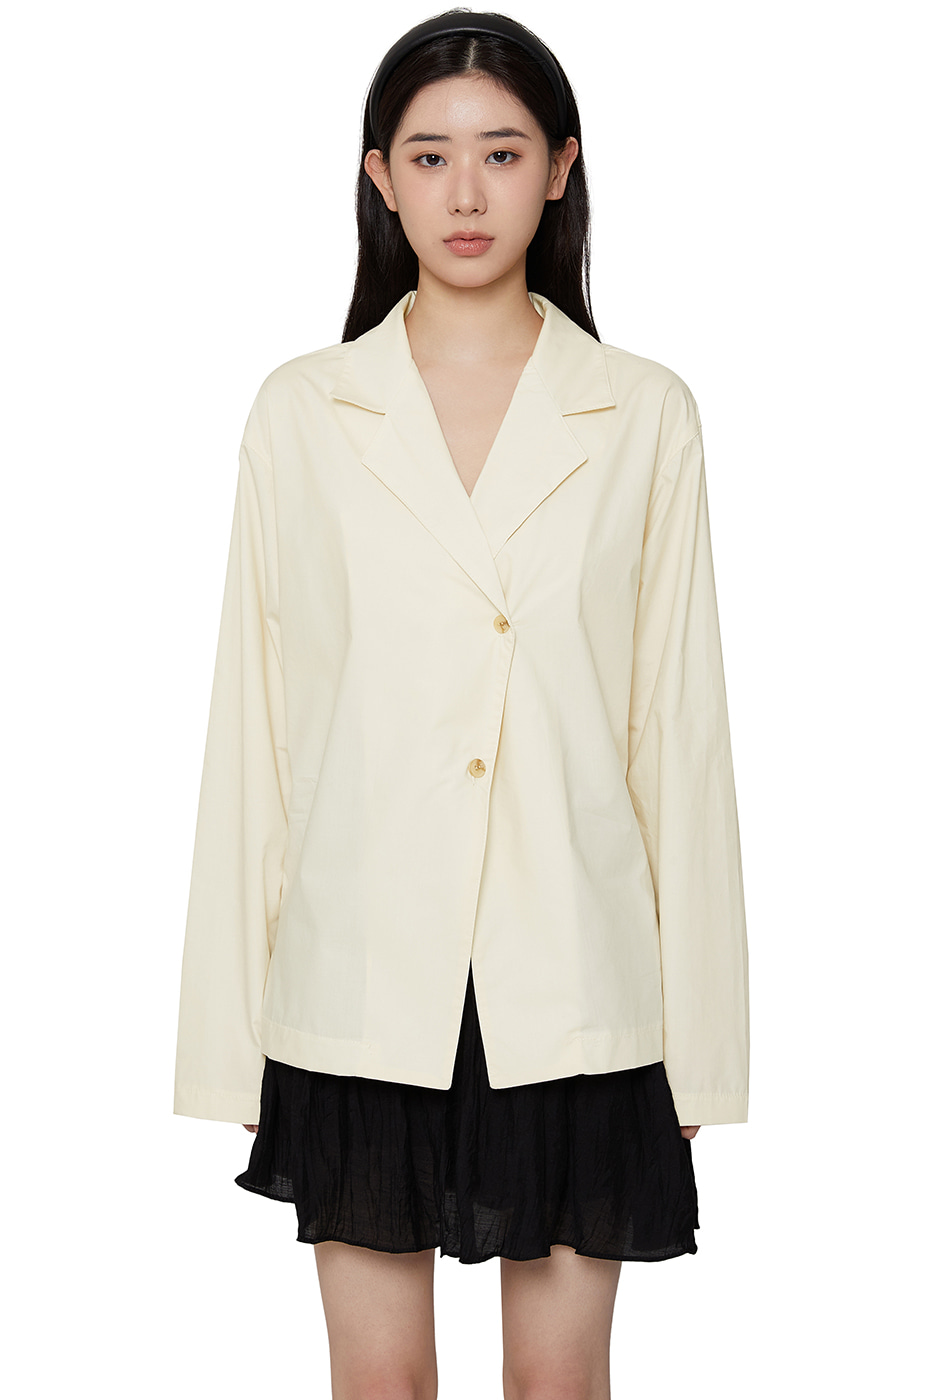 French tailored blouse